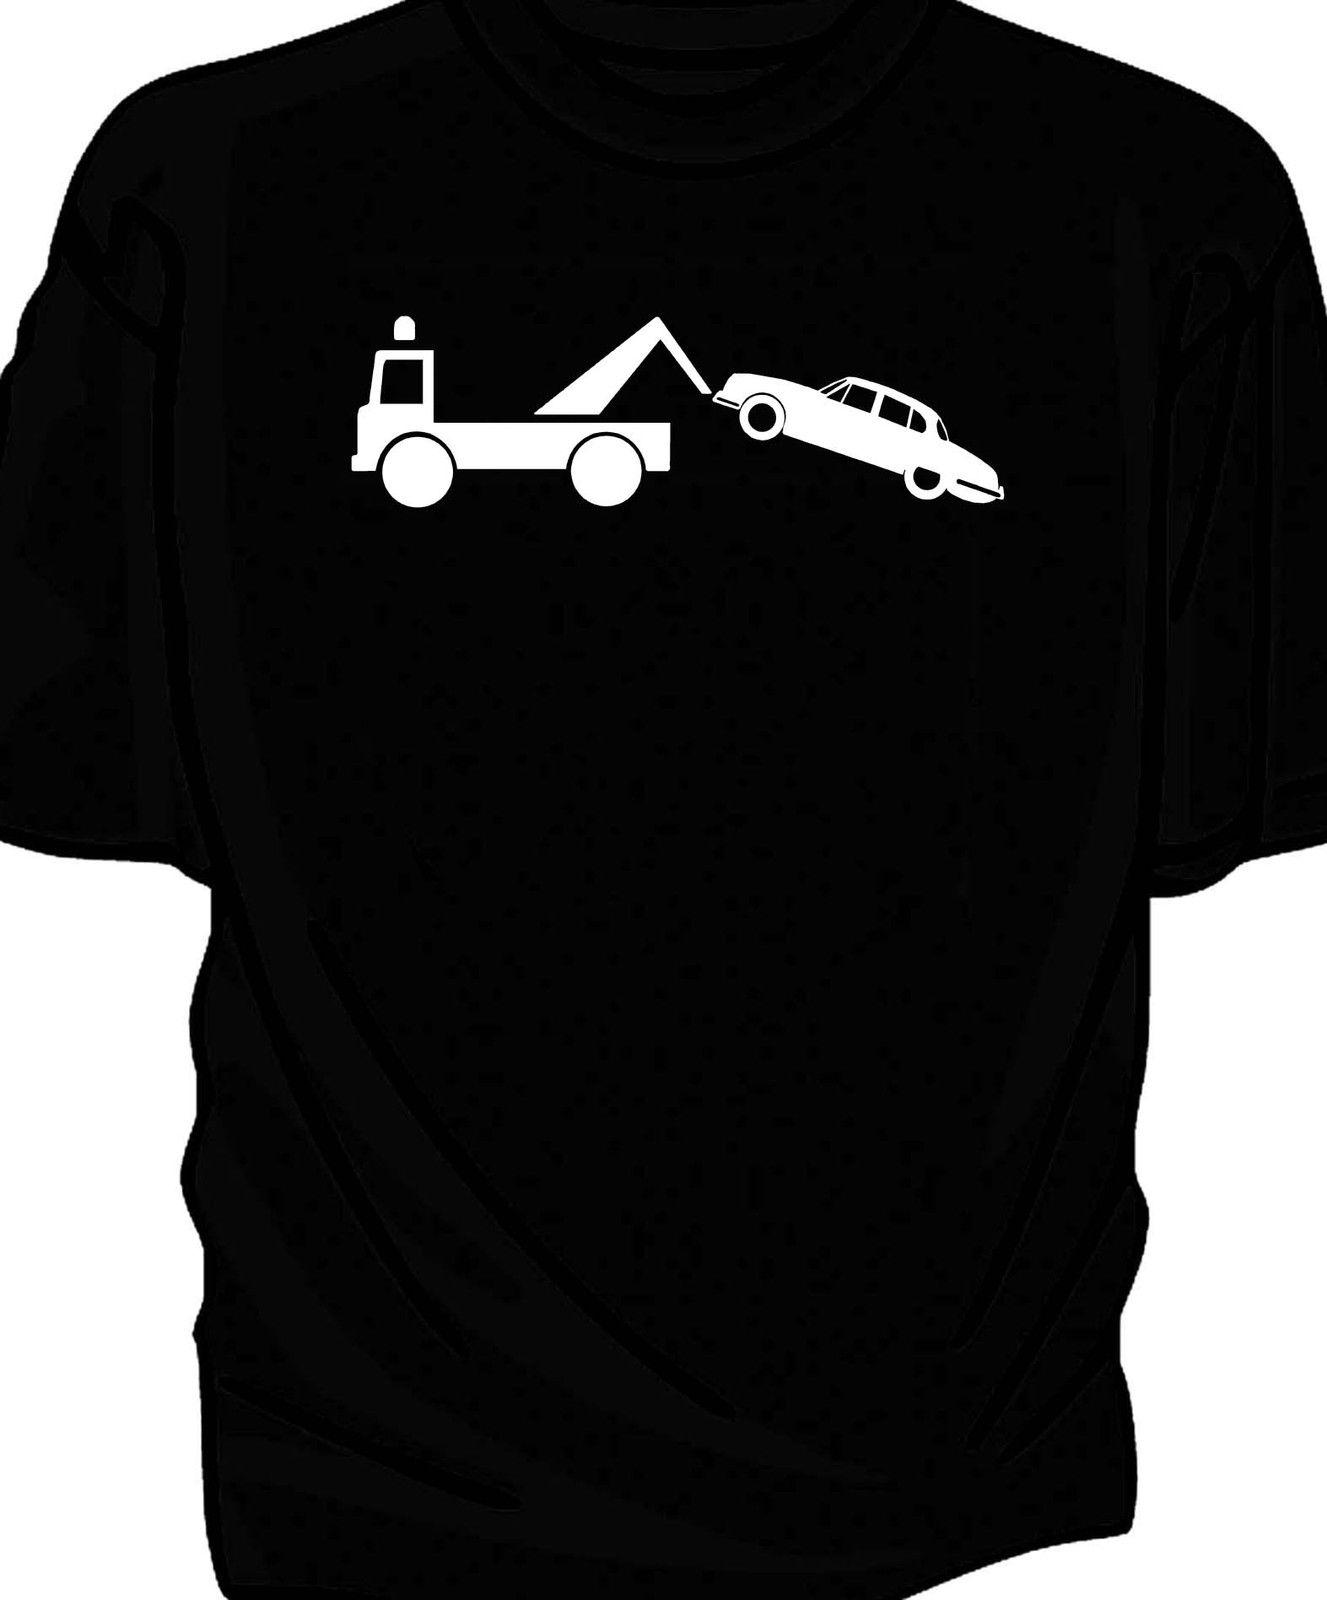 private team shirts backpack forum racing classifieds jaguar fs shirt trade sale midatlantic and buy t